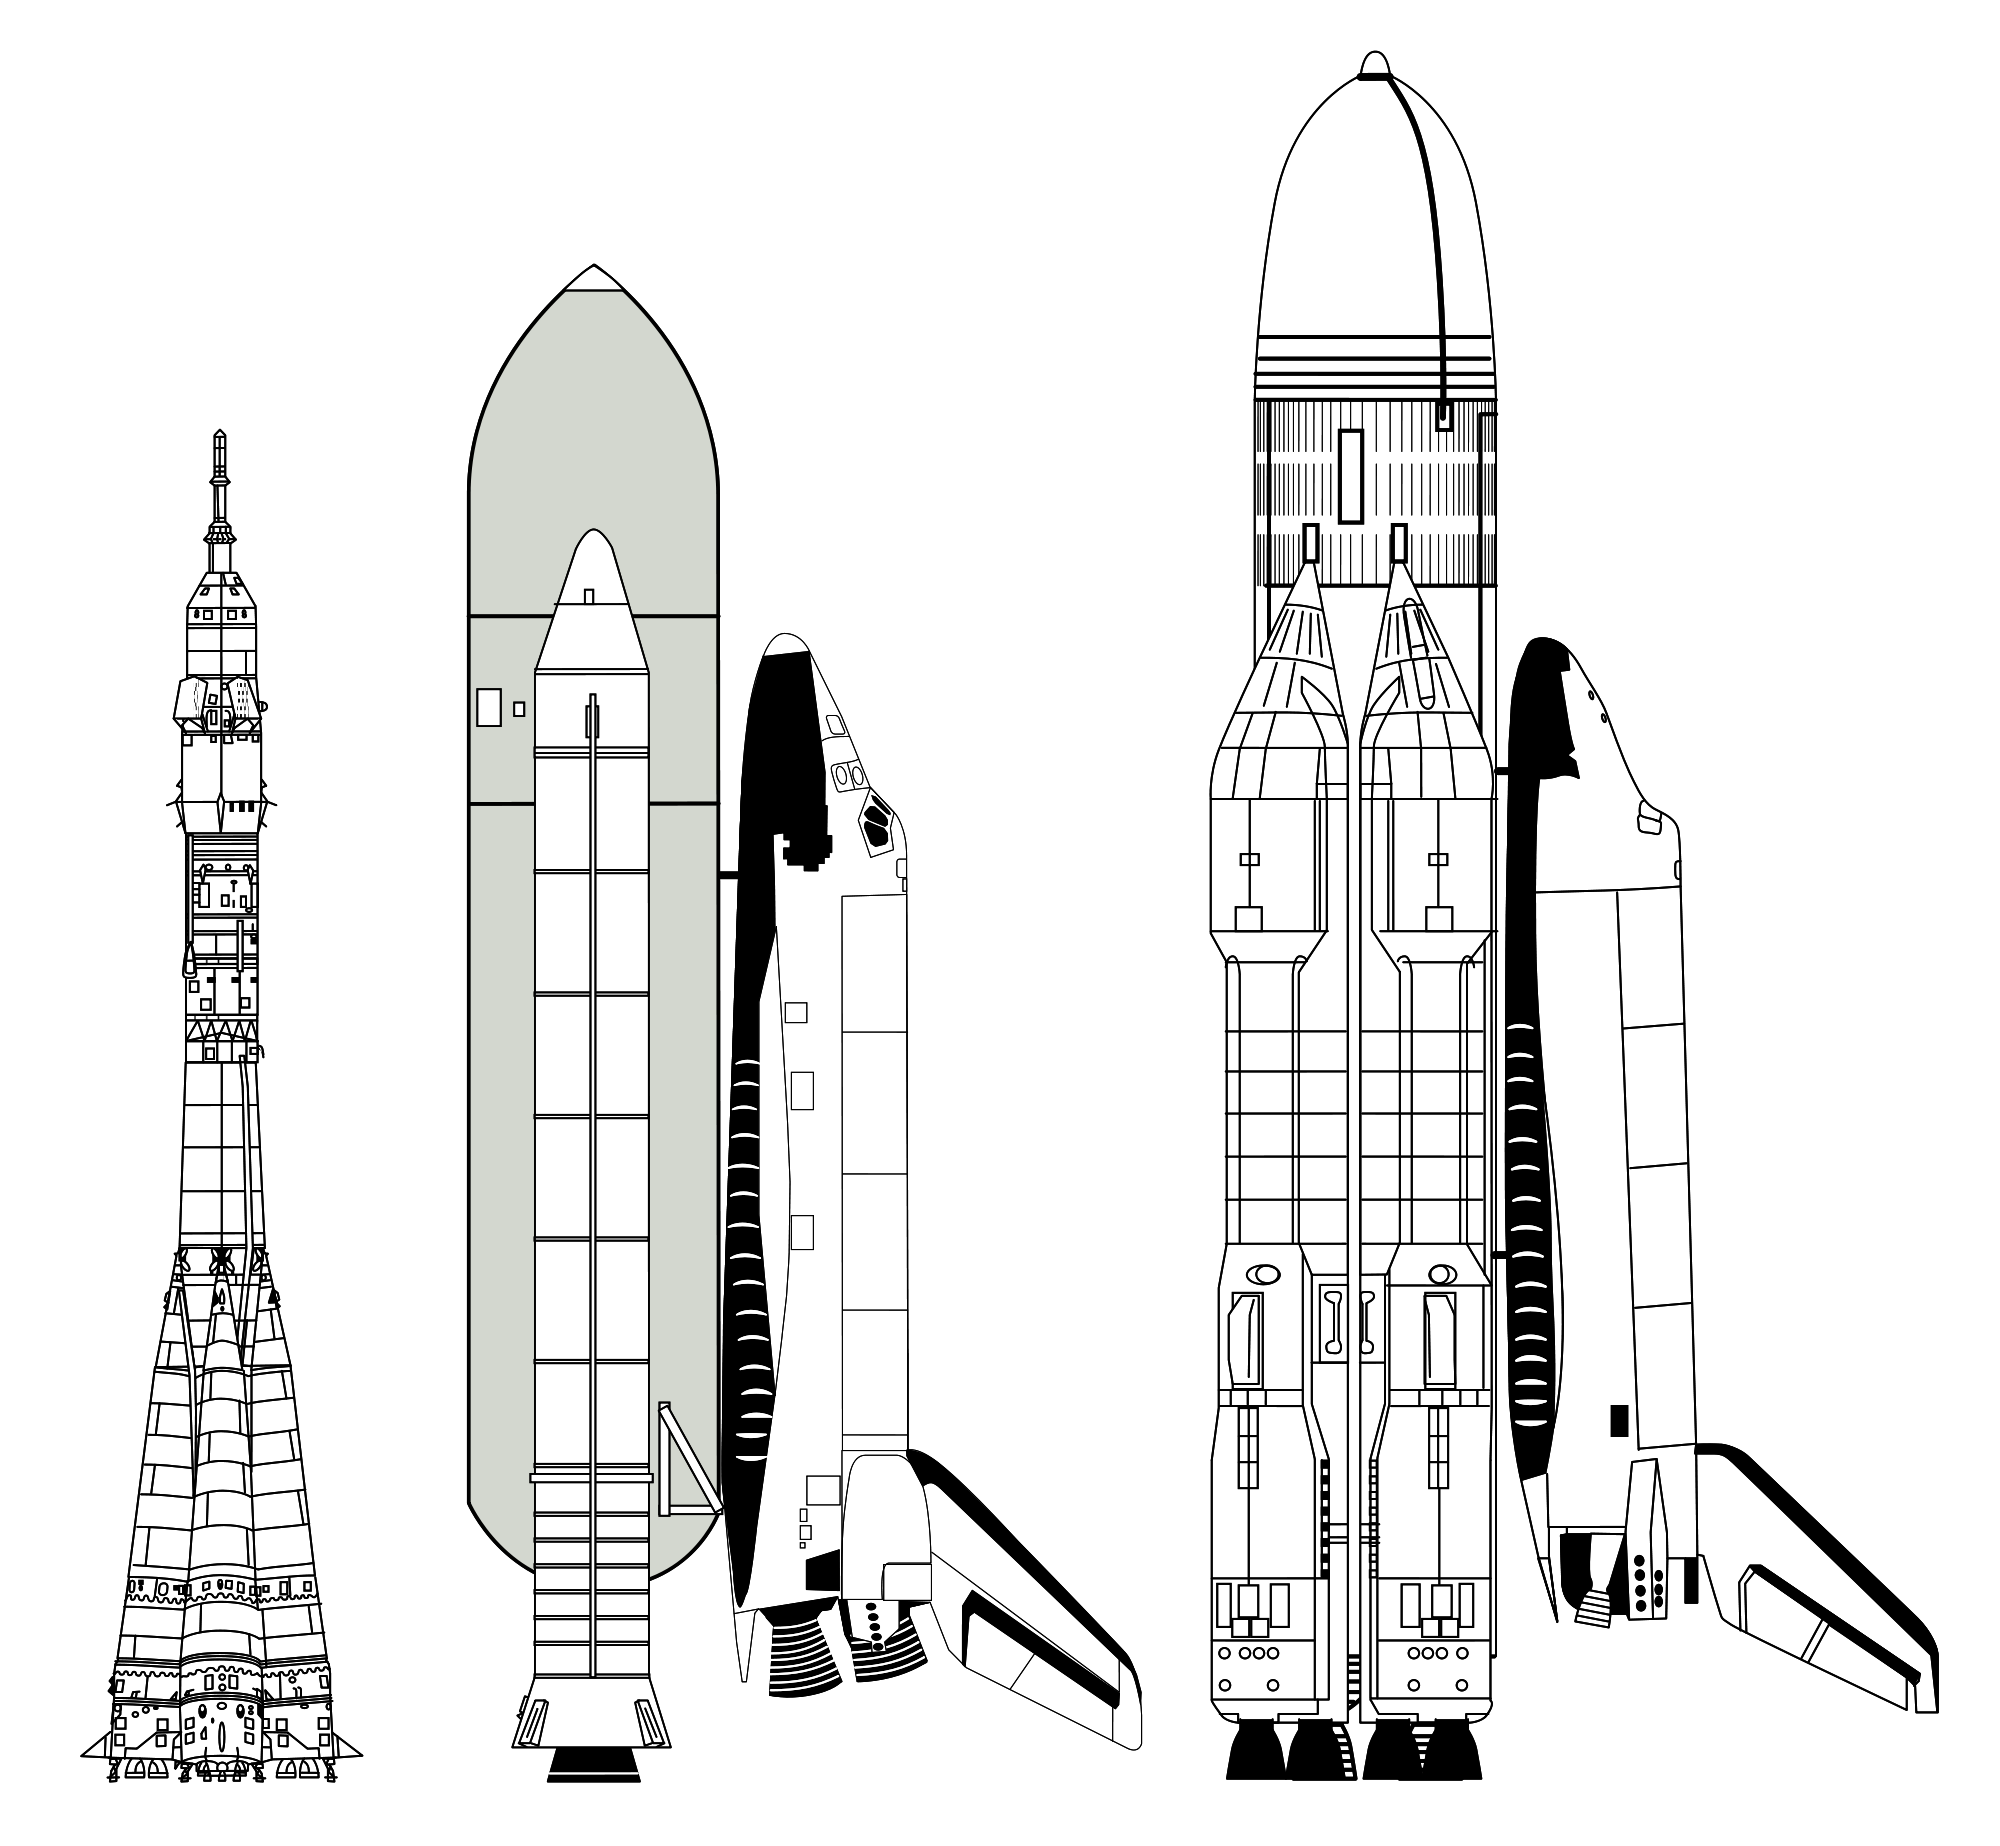 Soyuz launch vehicle the. Clipart rocket space transportation